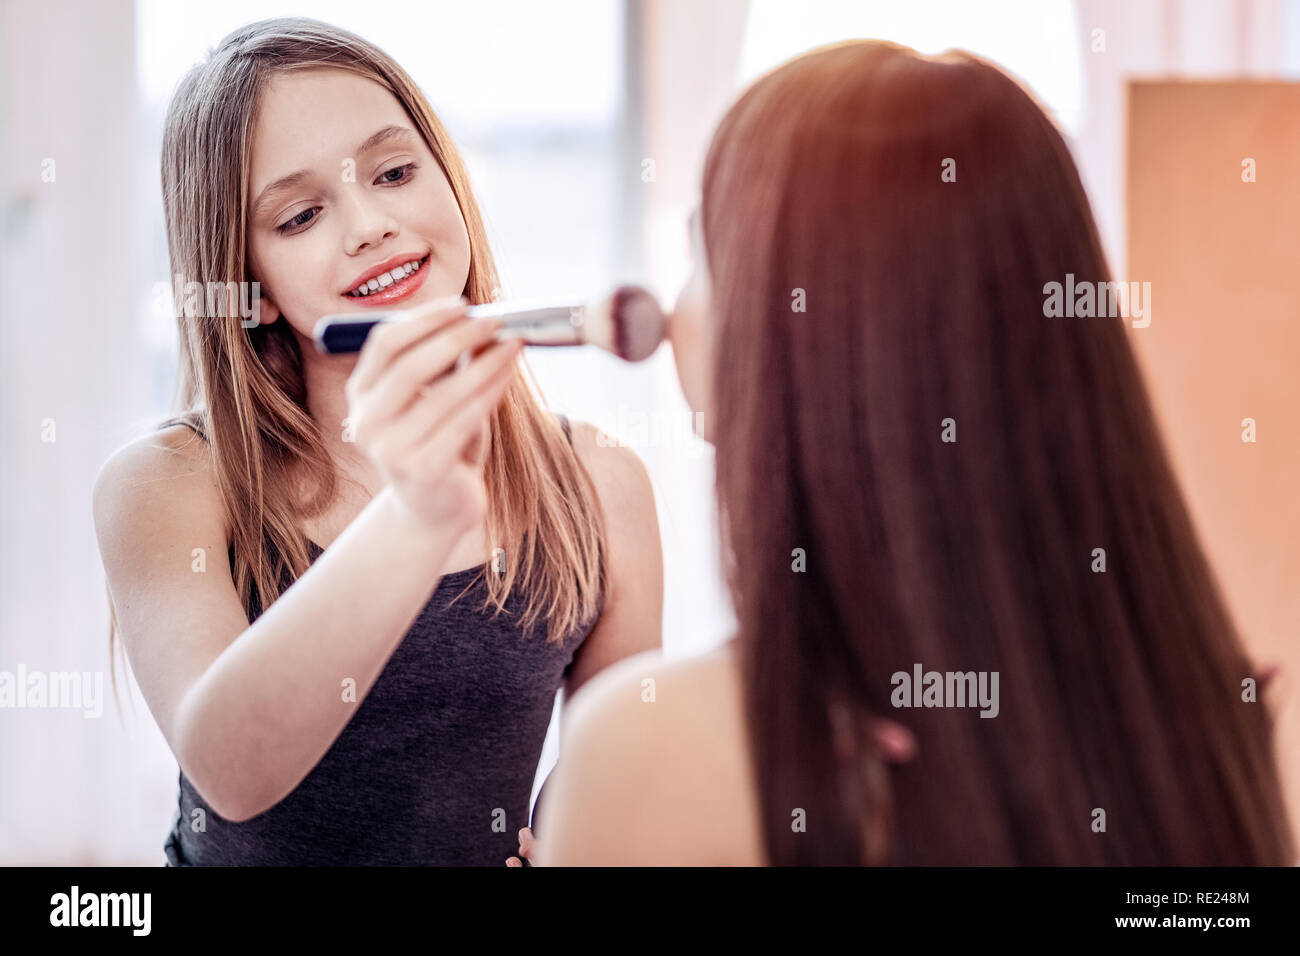 Inspired two girls getting rid of redness - Stock Image